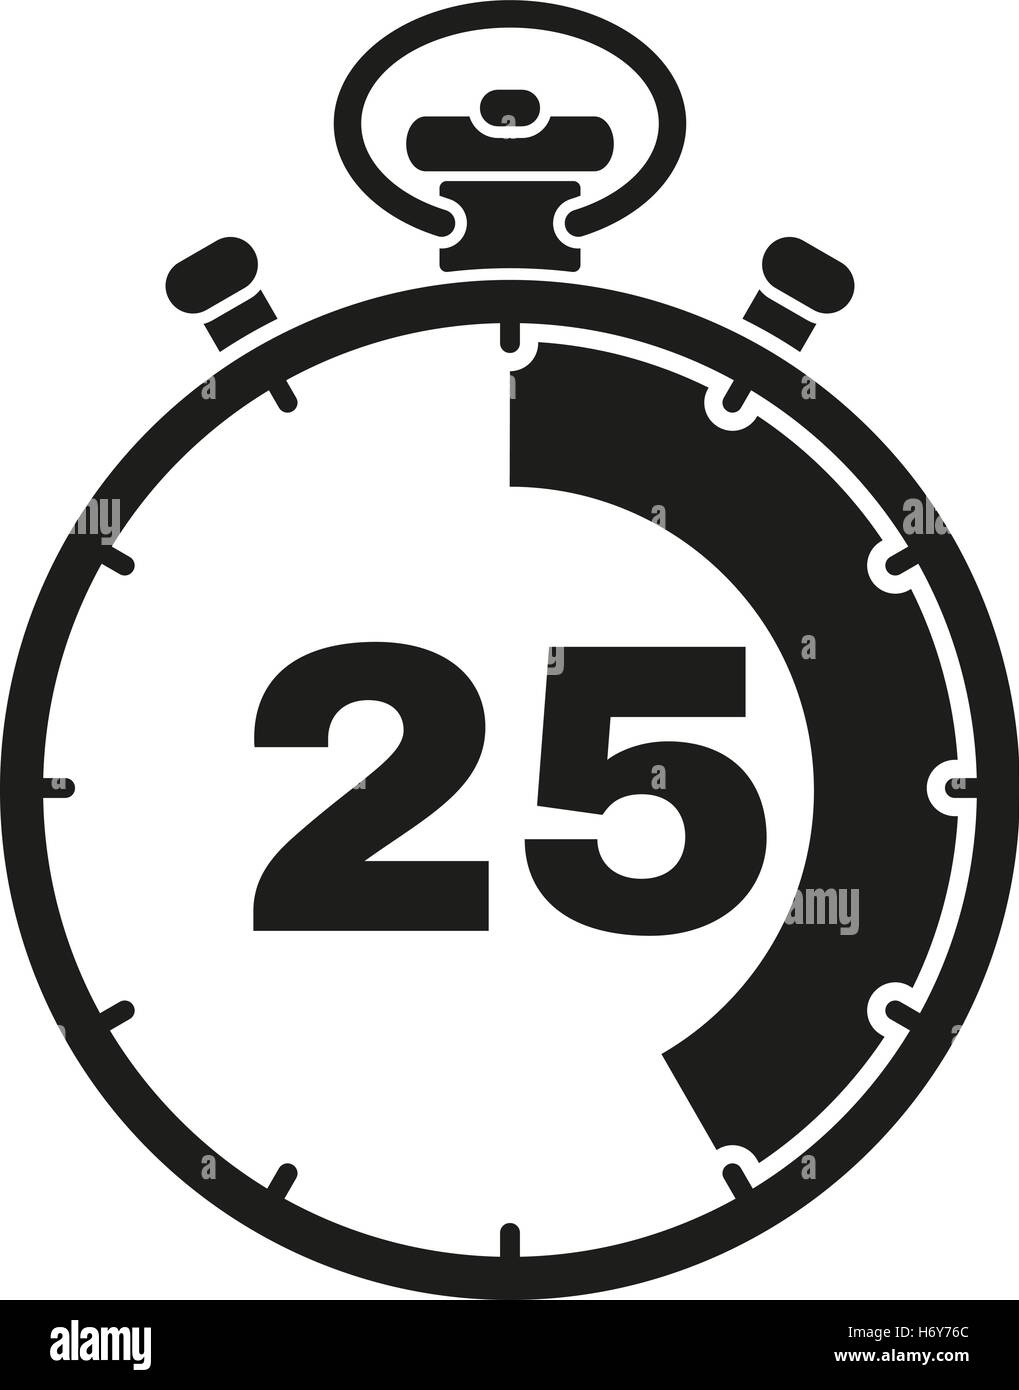 the 25 seconds minutes stopwatch icon clock and watch timer stock